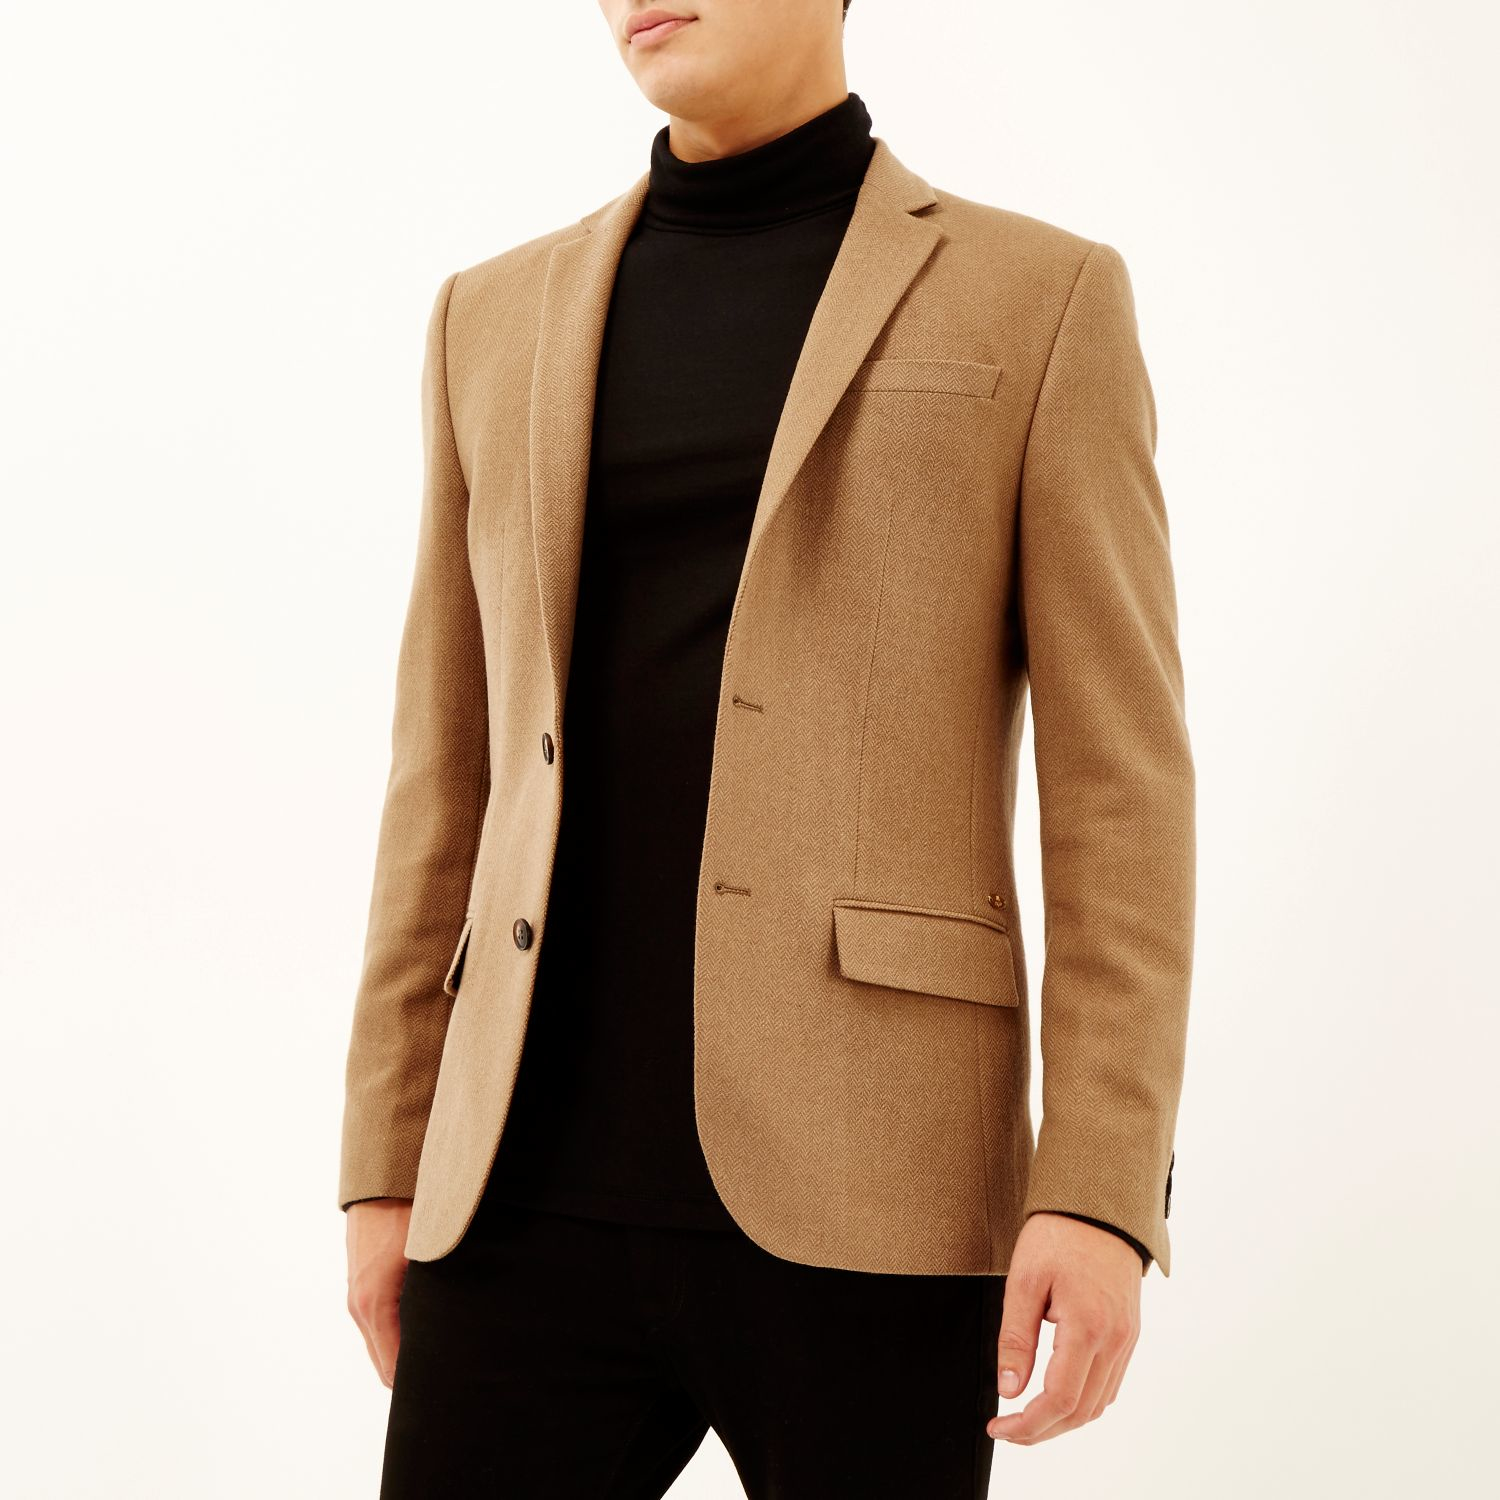 In order to qualitfy for above price, you may mix and match men's and women's blazers, colors and sizes. For orders totaling less than 12 blazers, please add $ per blazer. Men's sizes and women's sizes available.